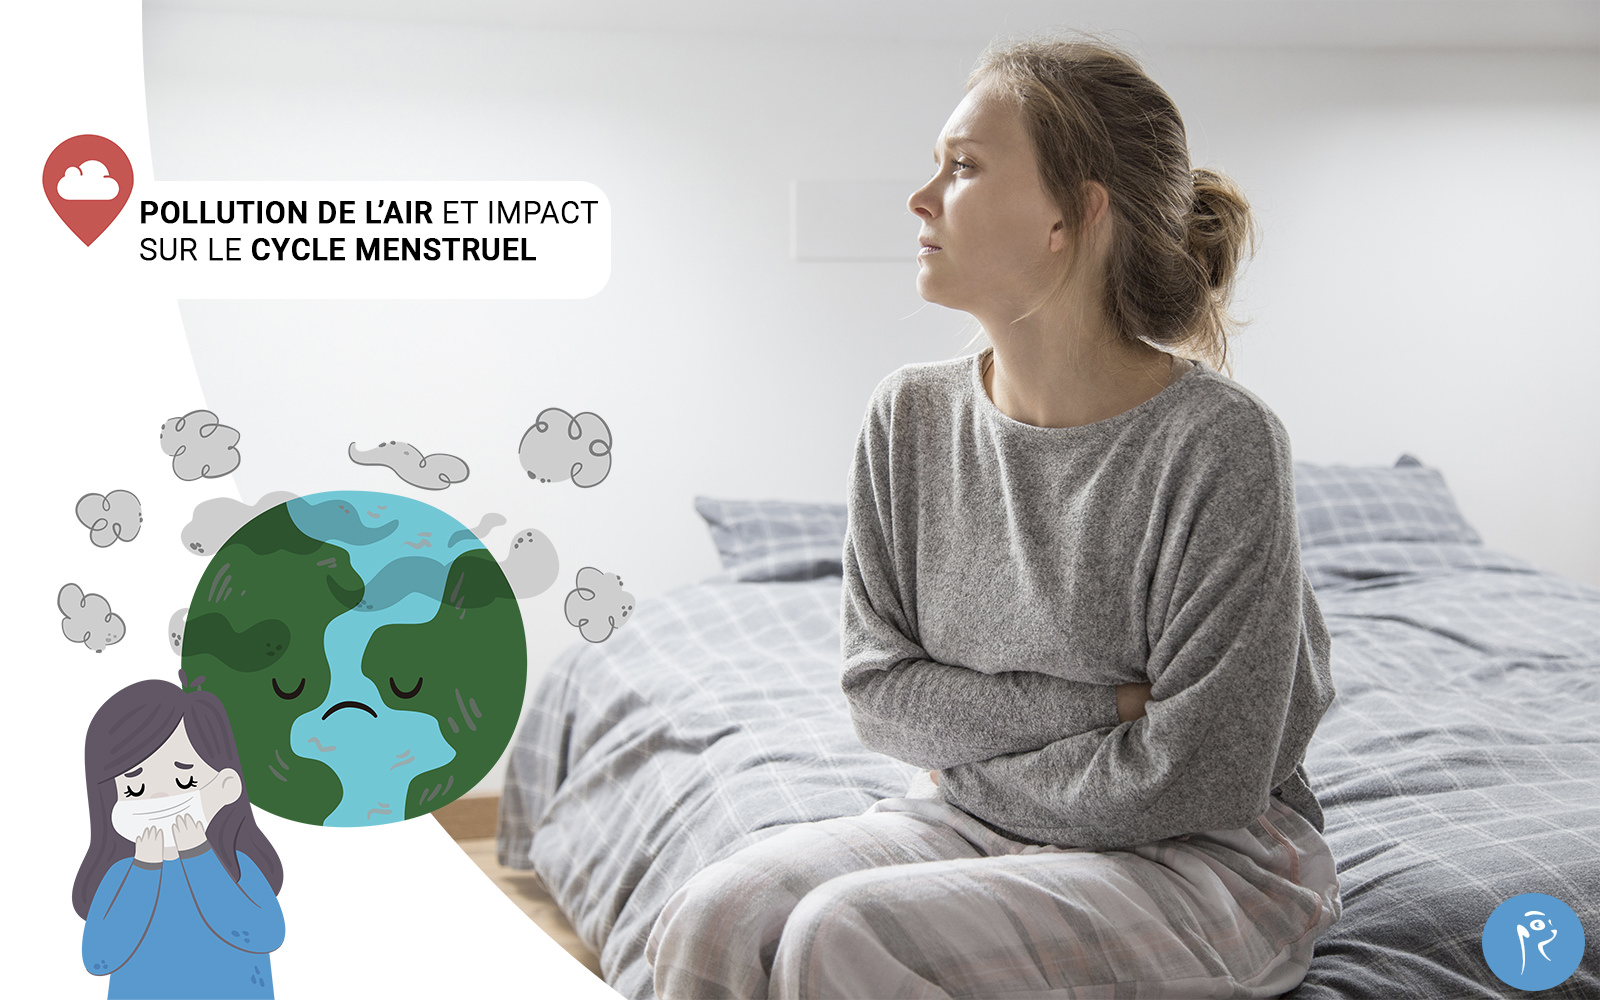 Air pollution and its impact on the menstrual cycle